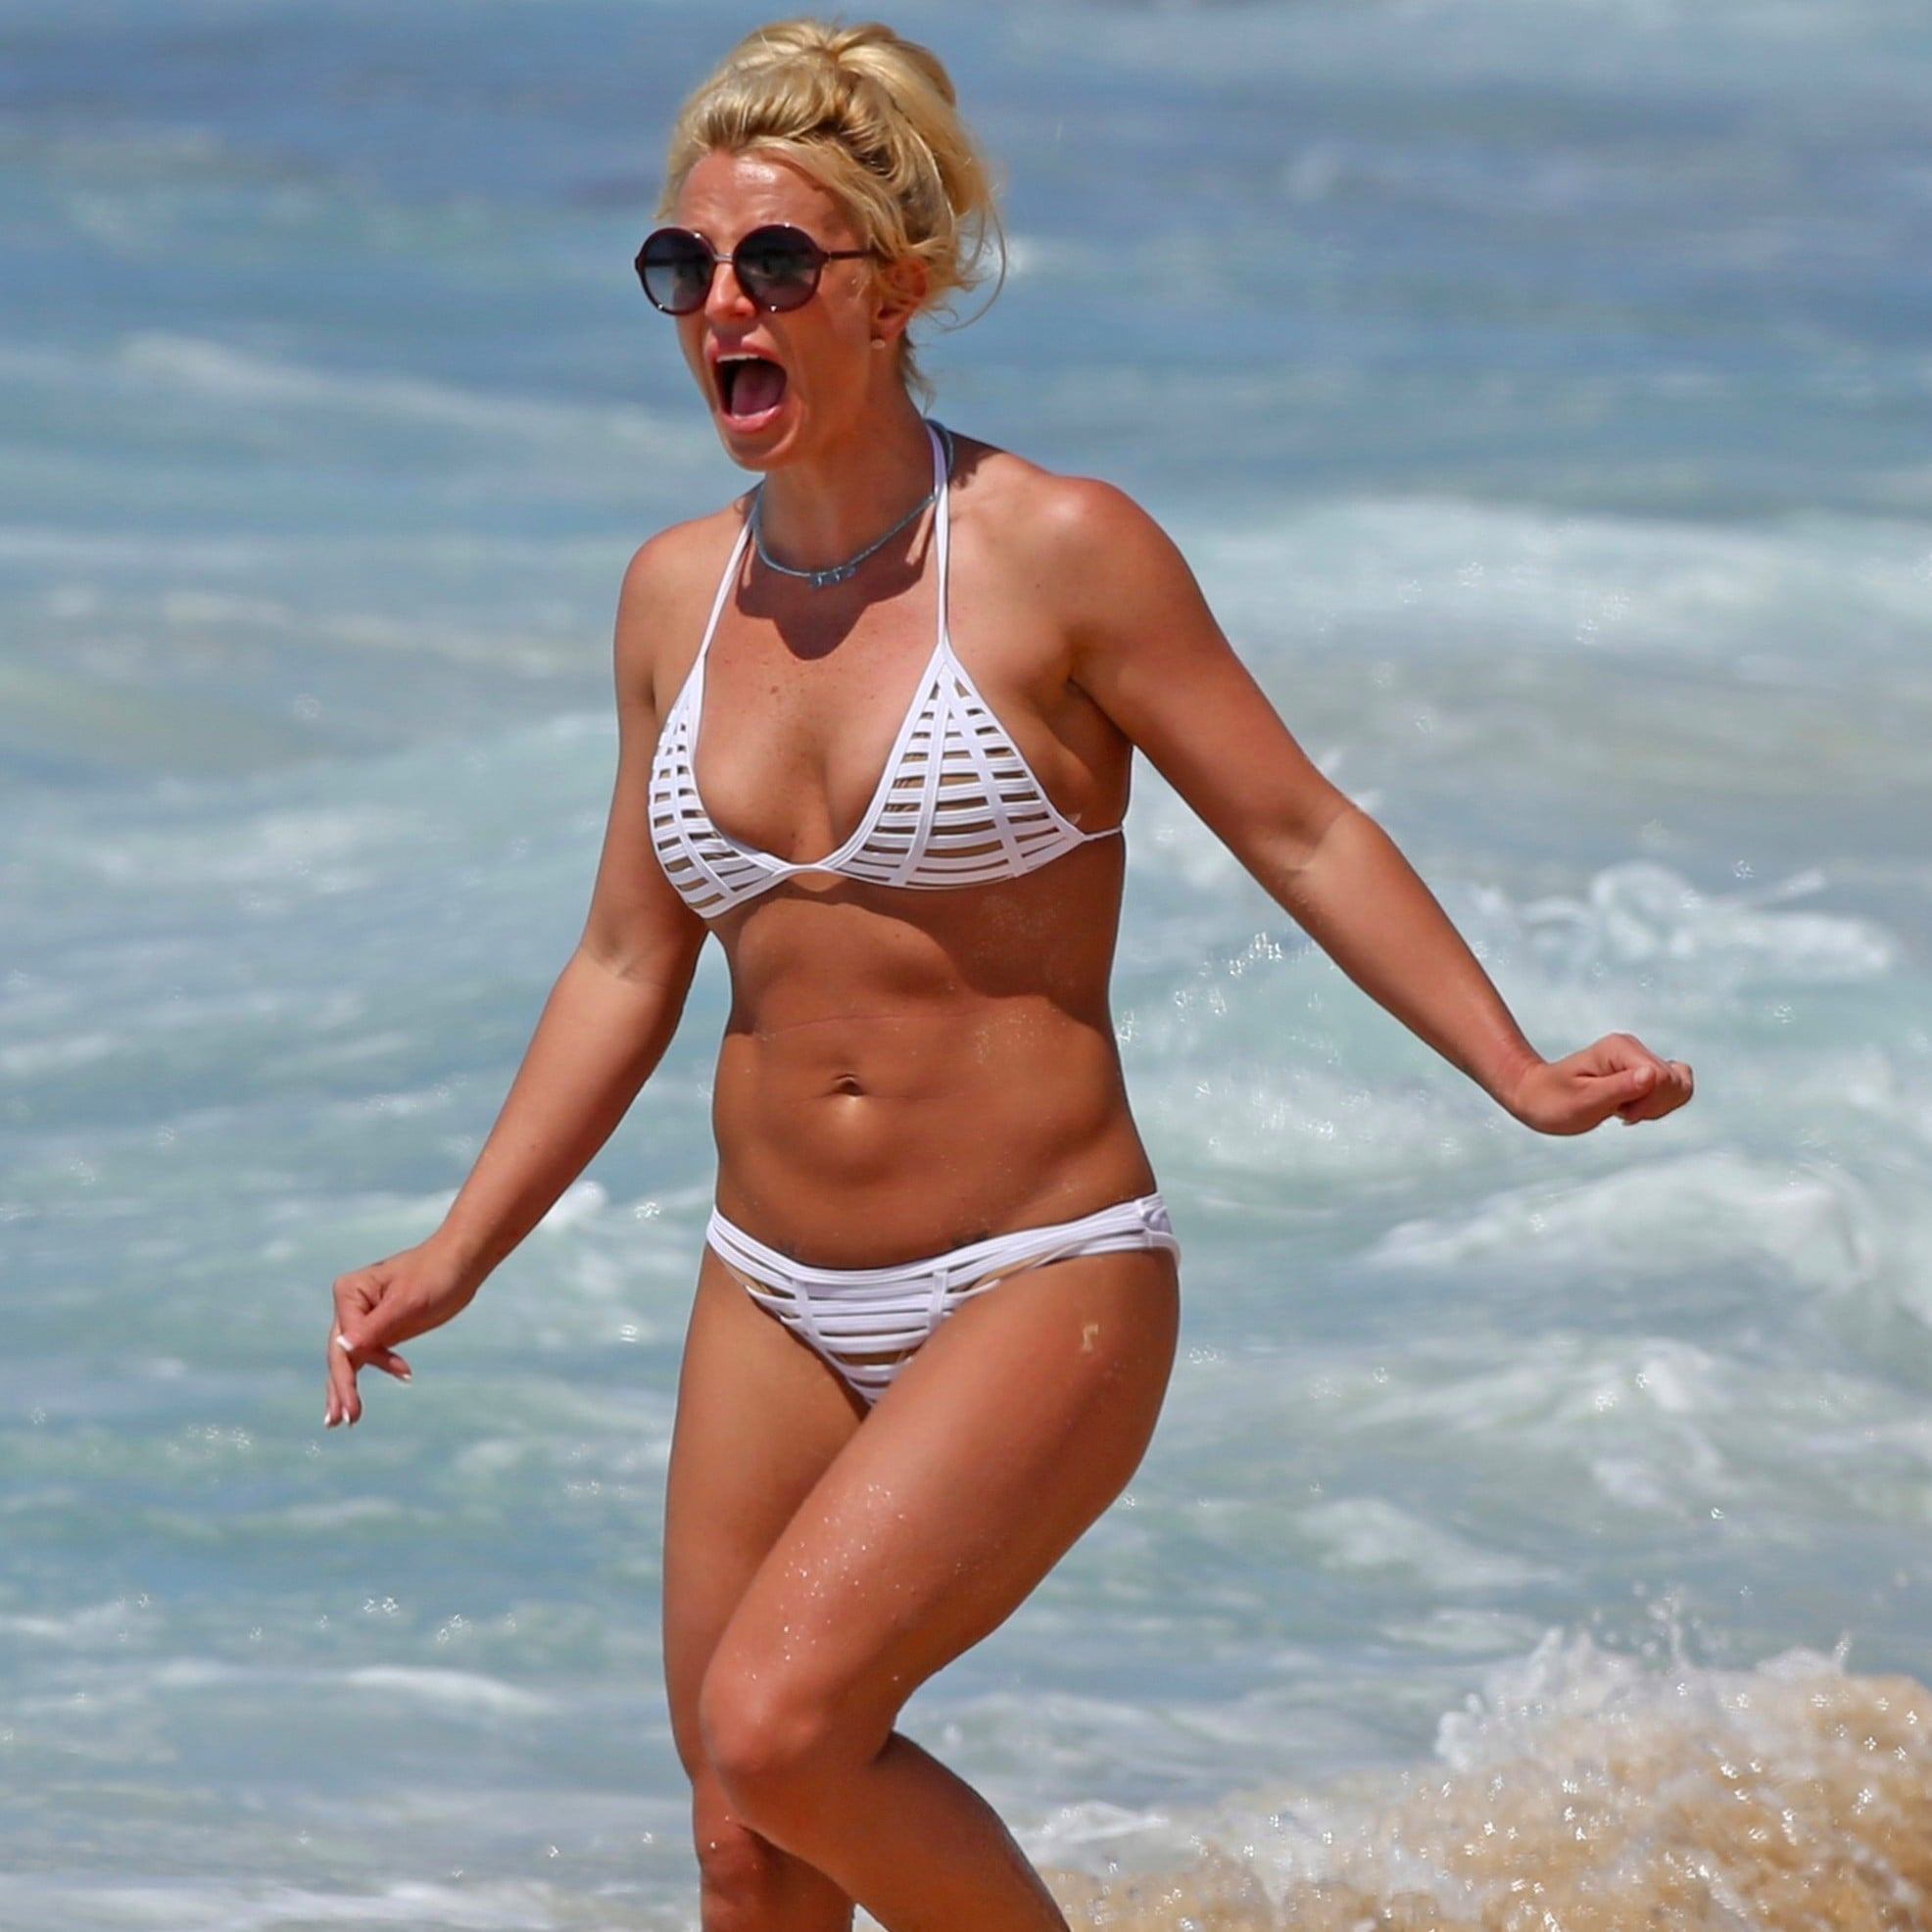 Brittney spears bikini pictures — img 12